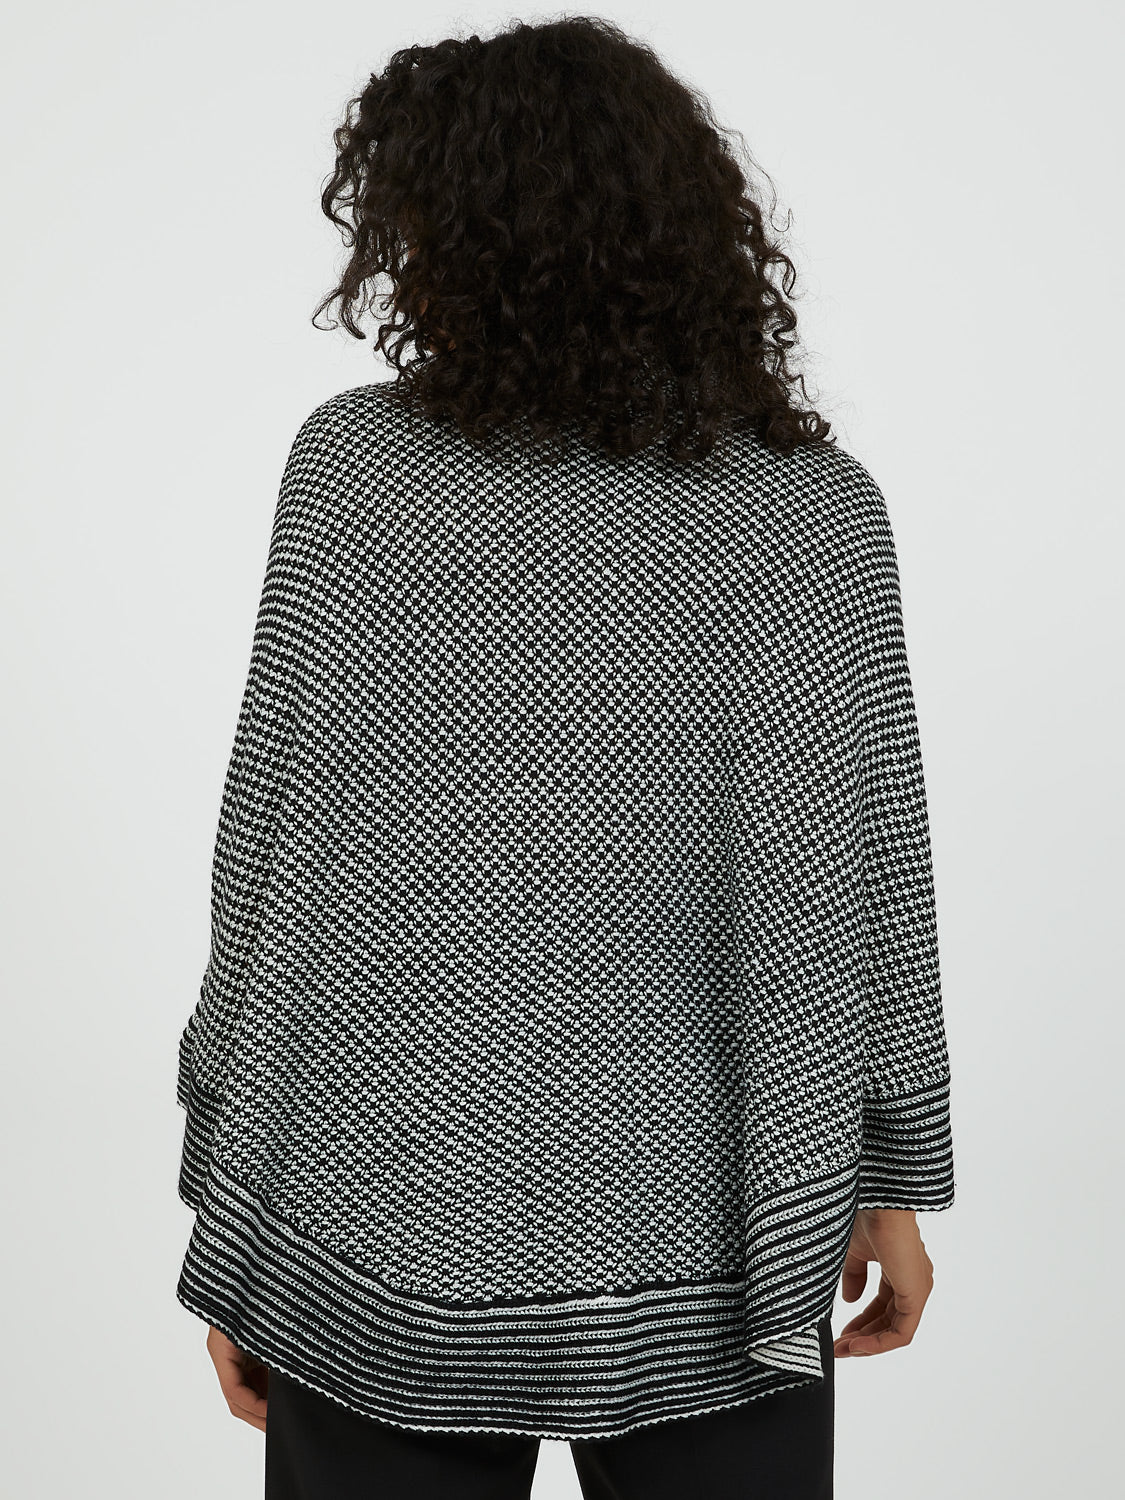 Cowl Neck Sweater Knit Poncho